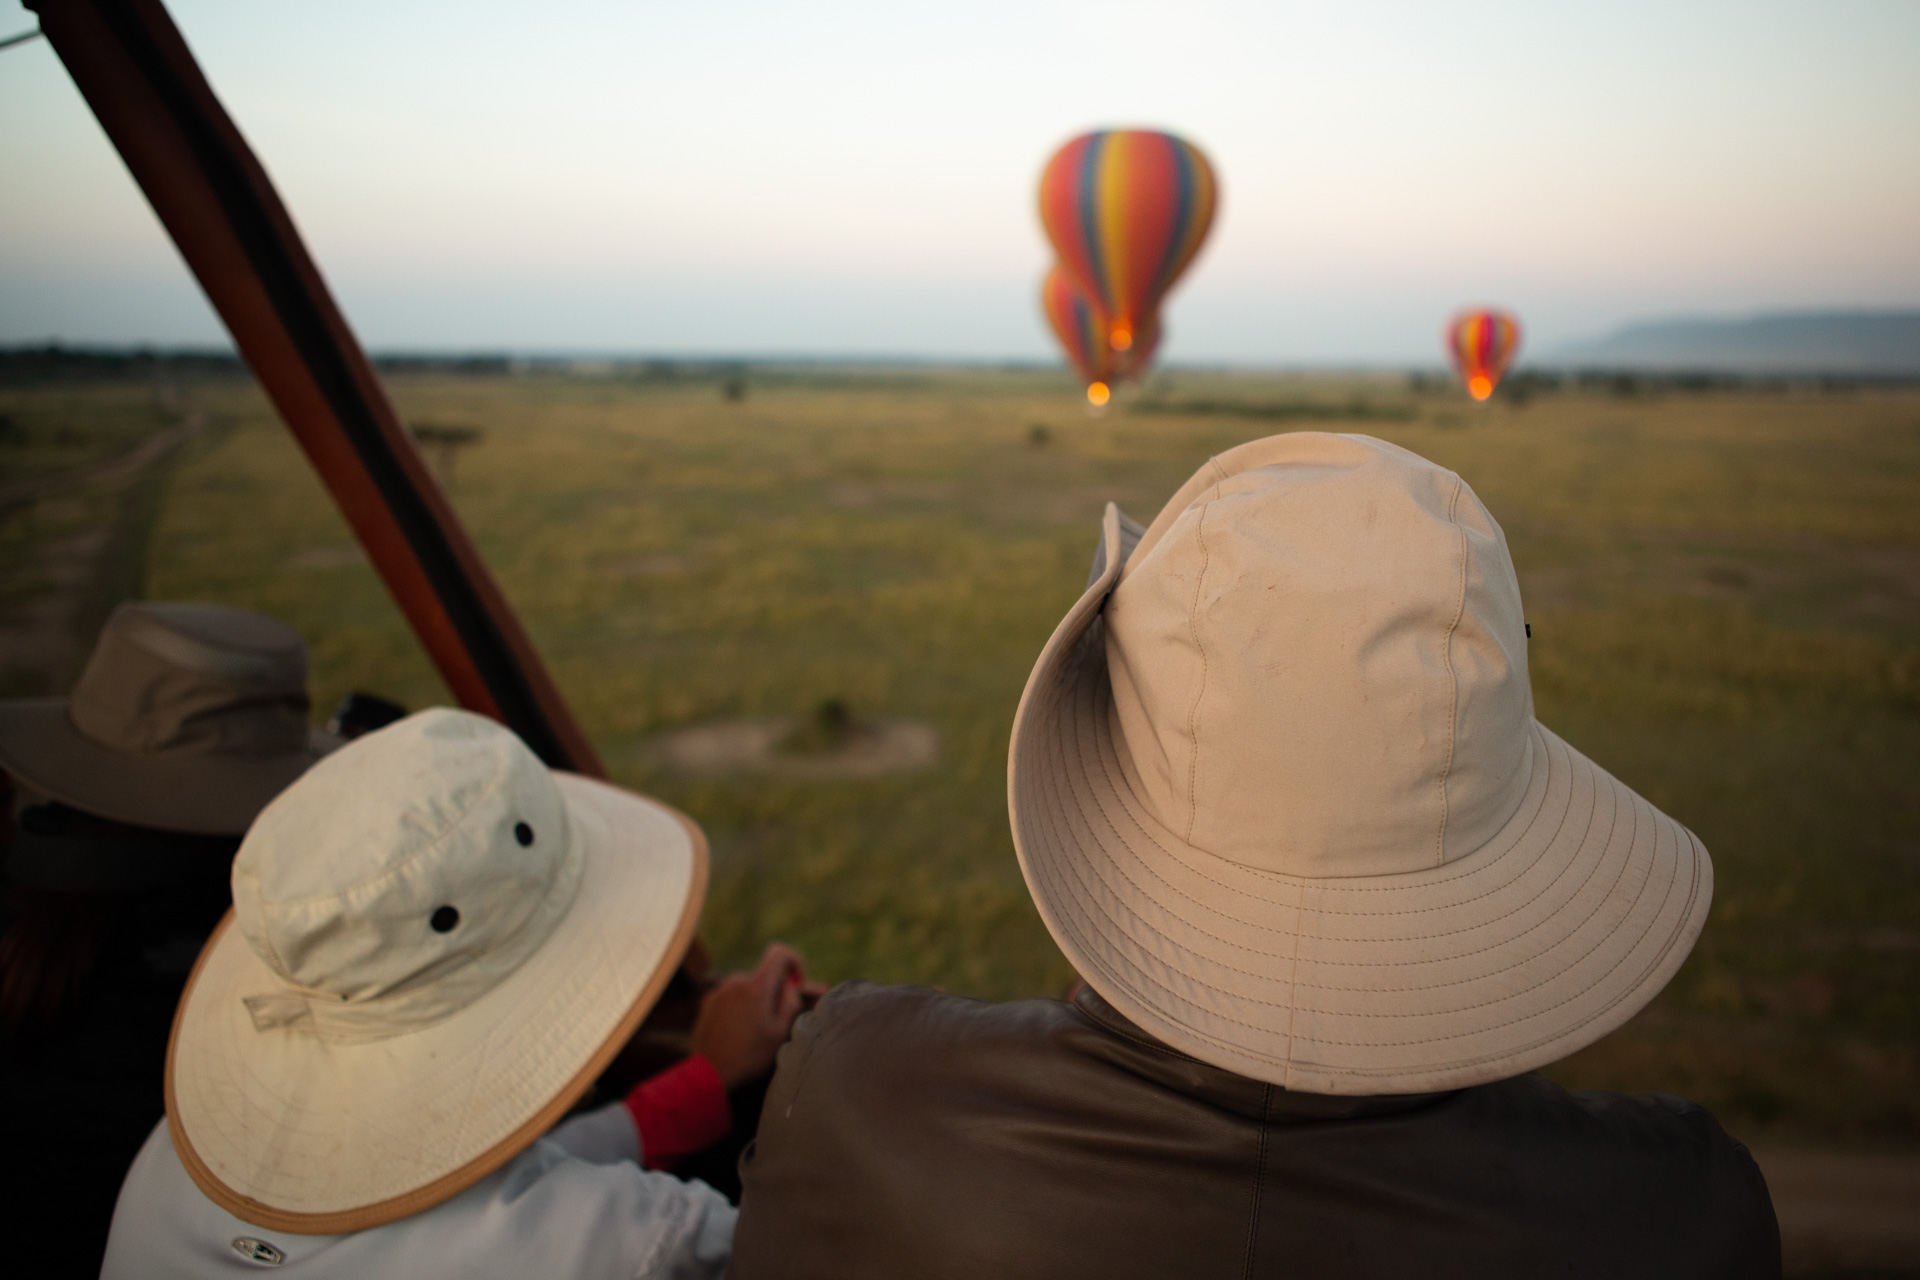 hats and balloons